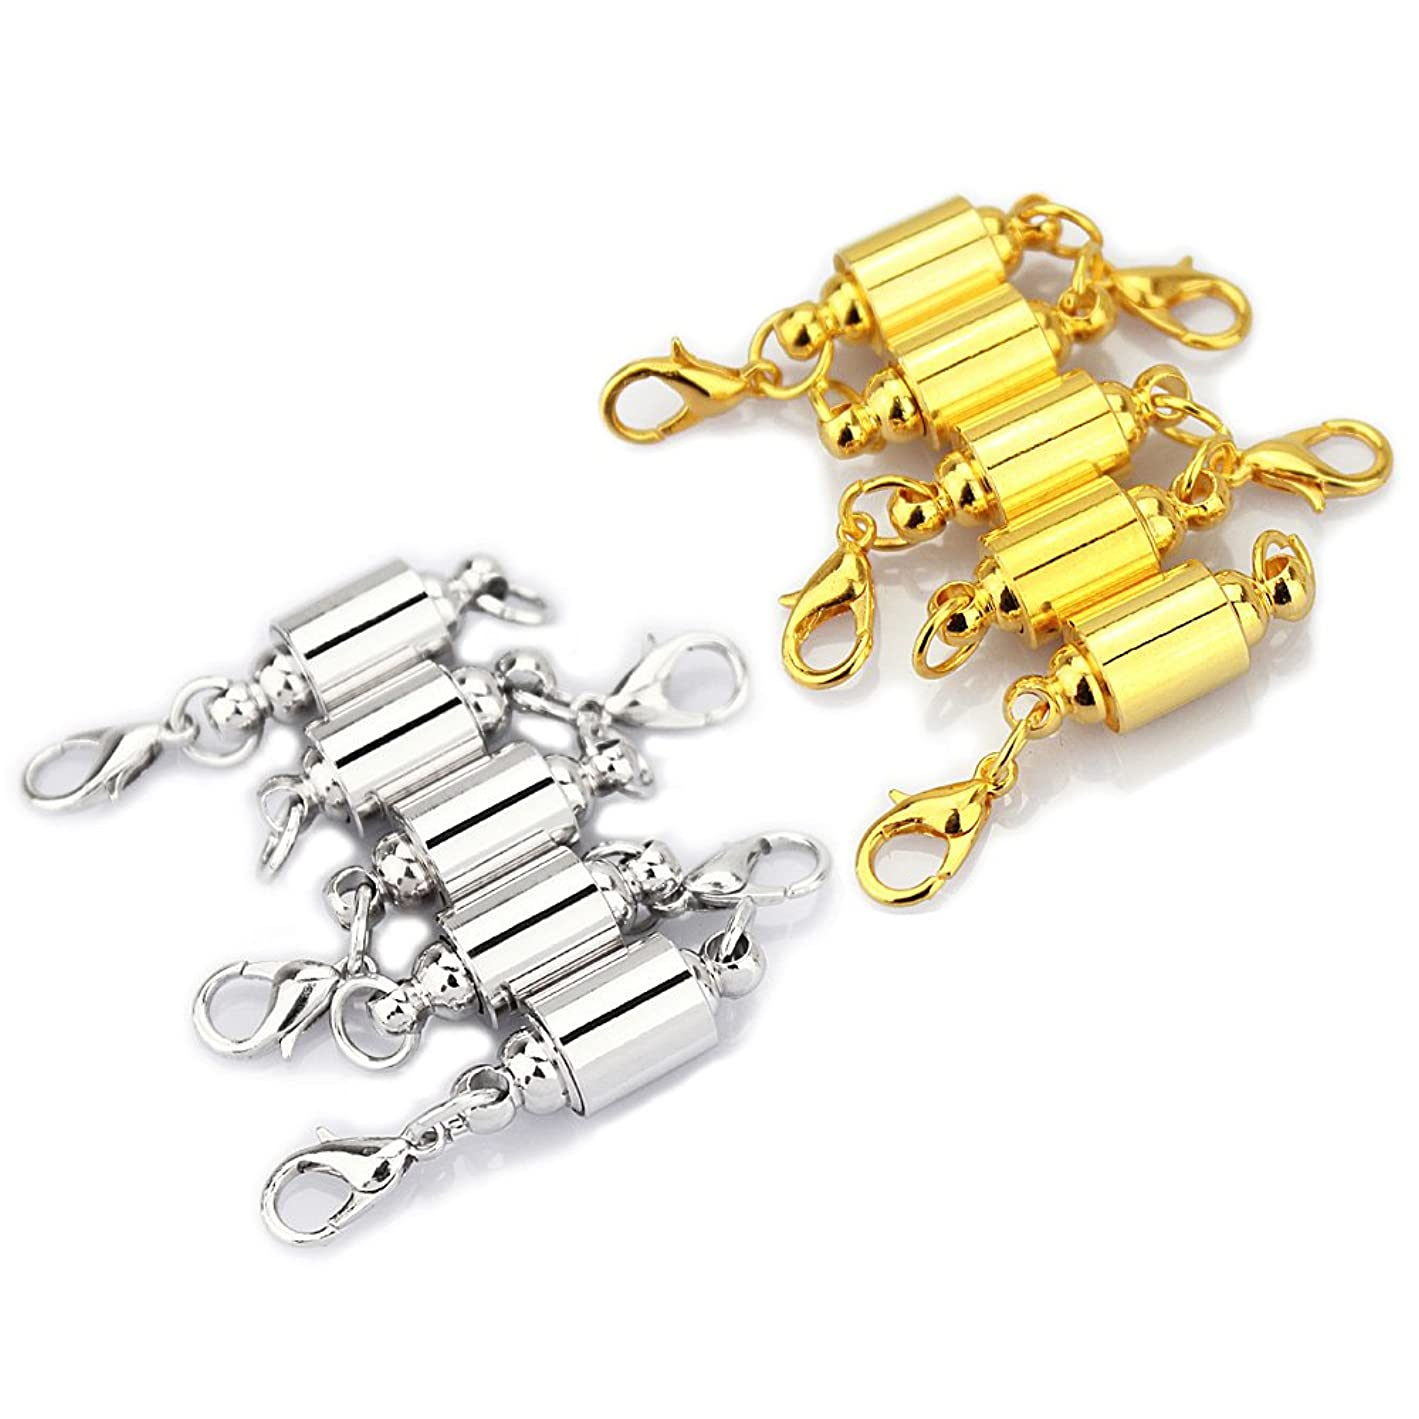 LolliBeads (TM) Barrel Style Magnetic Jewelry Clasps Findings Magnetic Lobster Clasps for Necklace 8 mm Silver/Gold Mixed 10 Sets l26986500580027